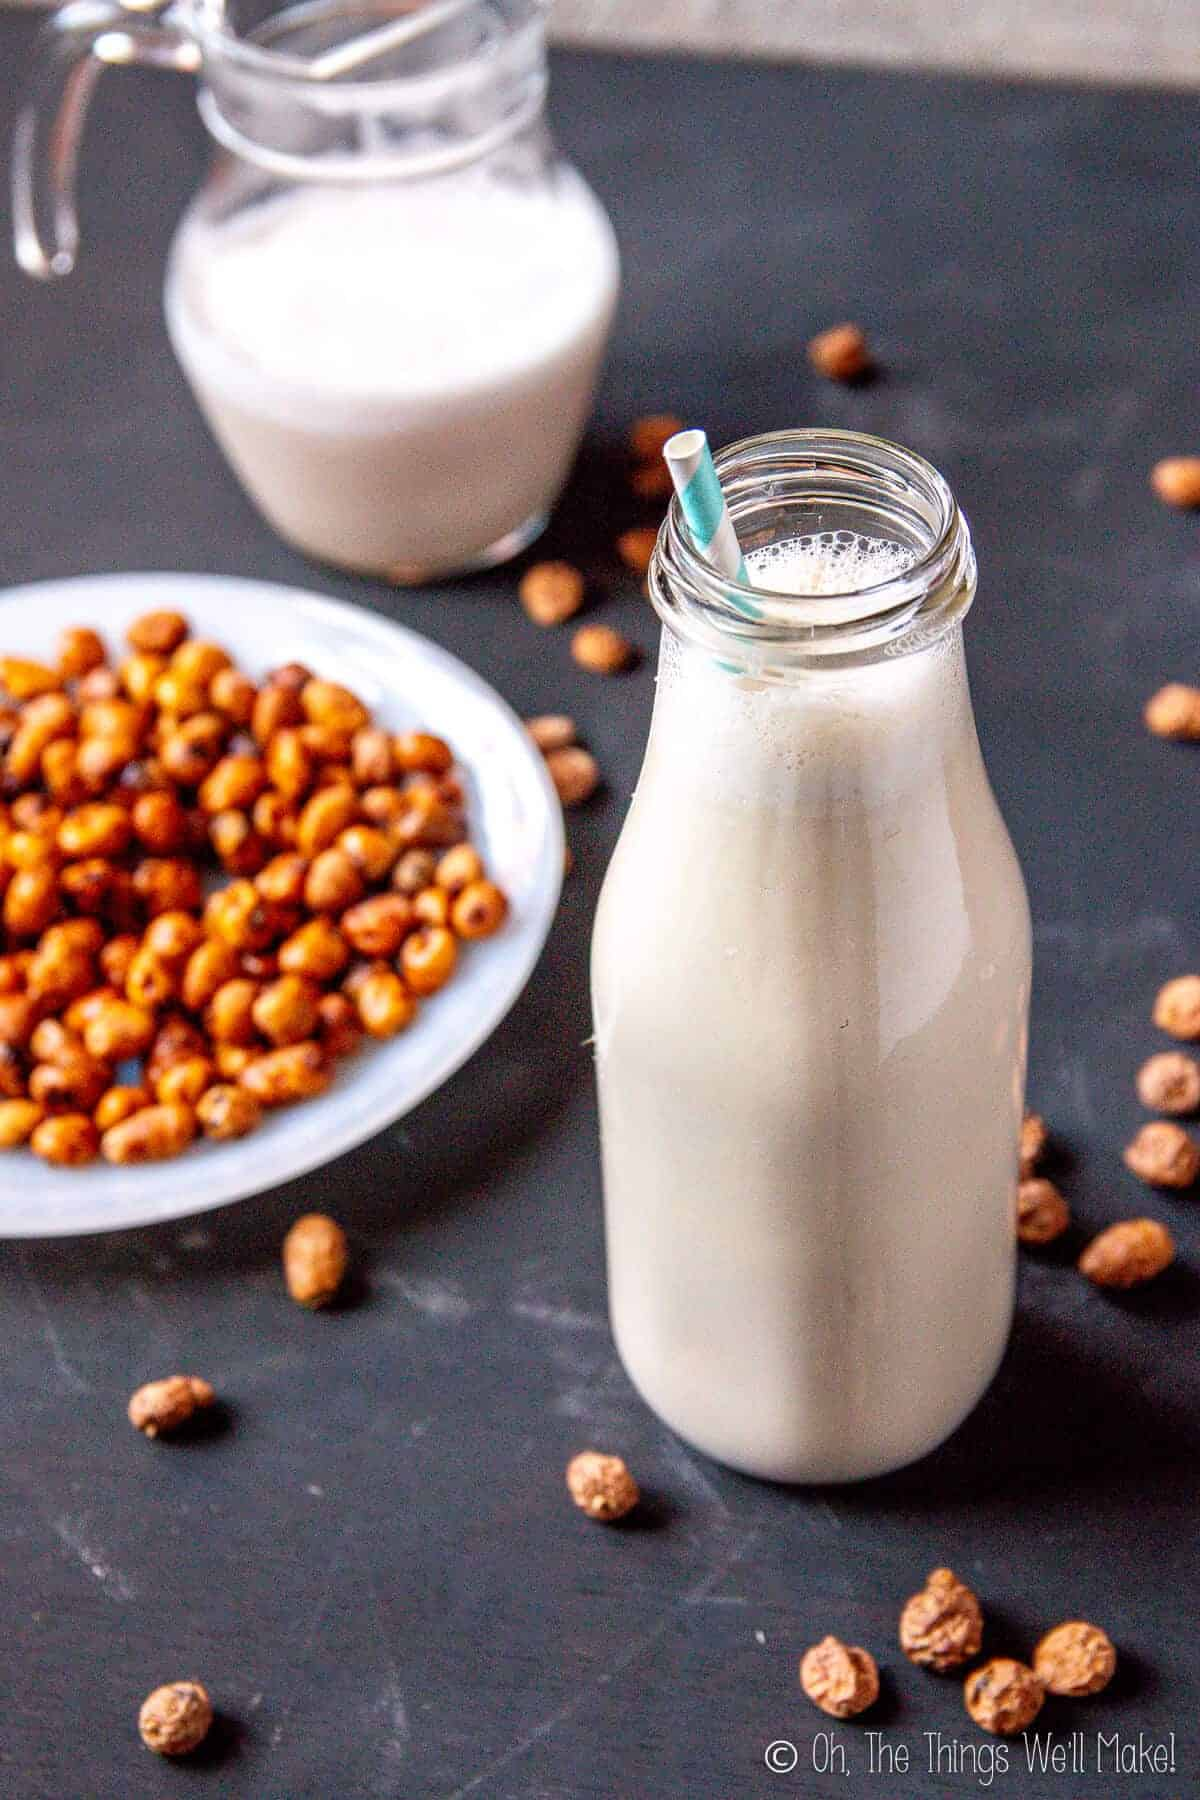 A bottle of tigernut milk (horchata de chufa) in front of a pitcher filled with more tiger nut milk, both surrounded by tiger nuts.